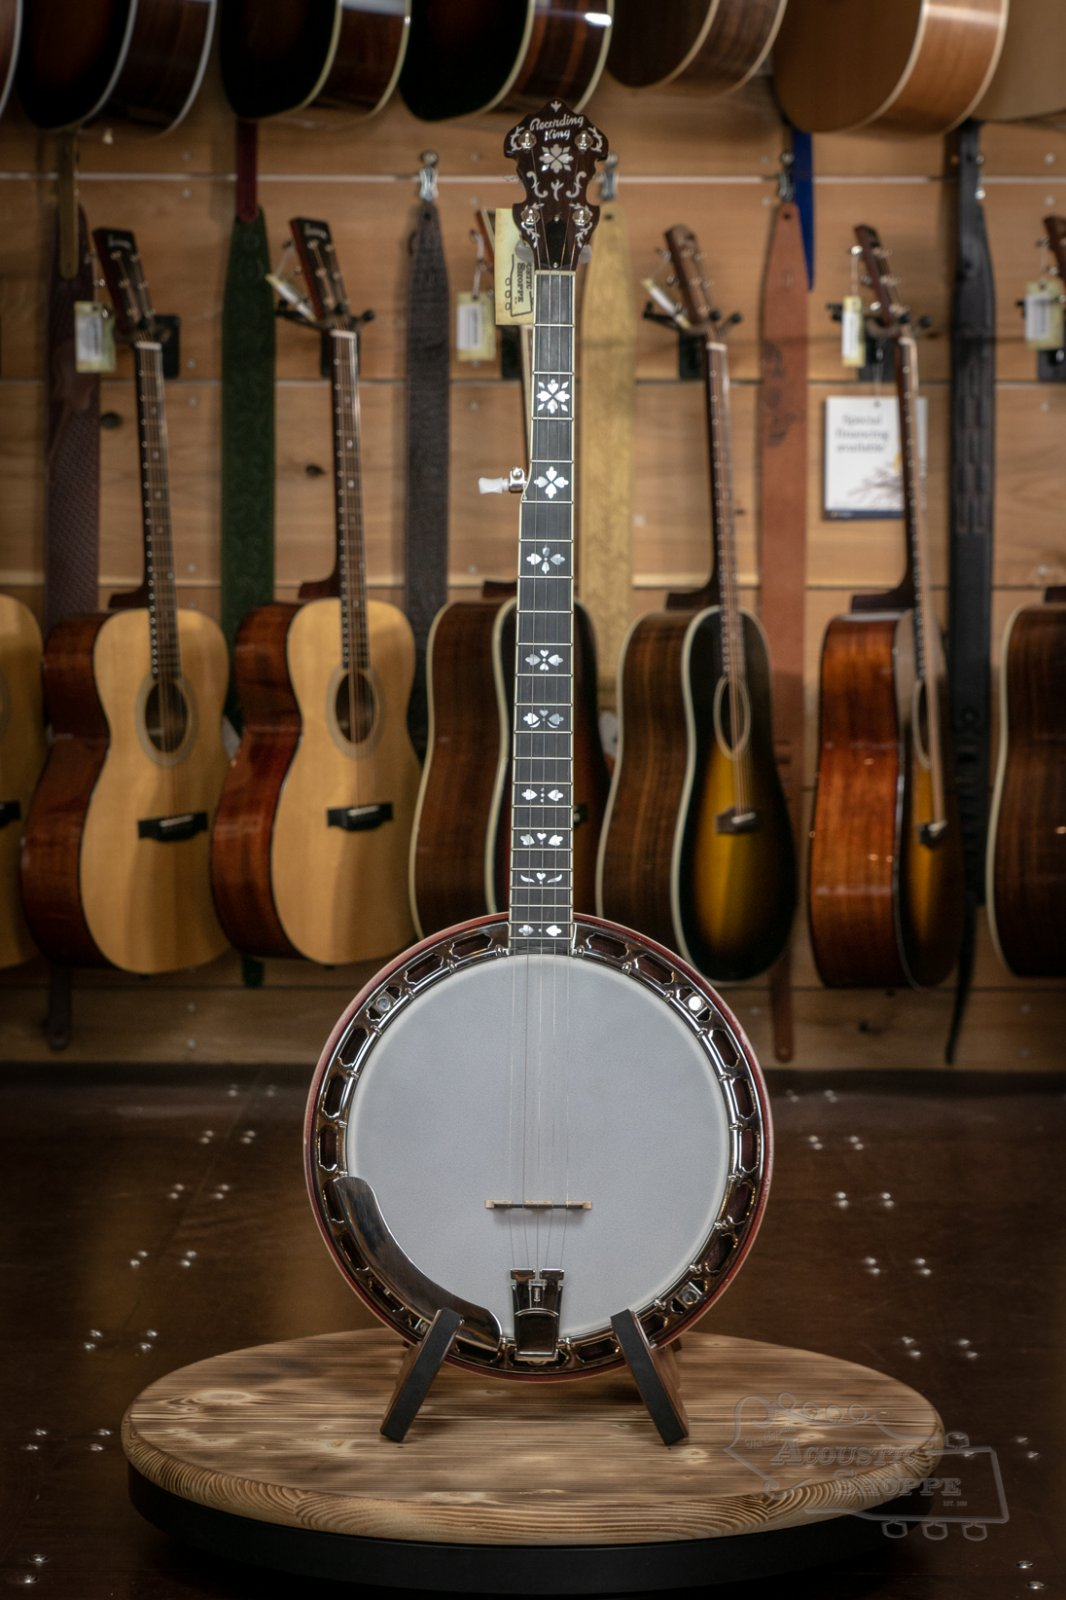 RK-ELITE-76 Recording King Resonator Banjo, The Elite Hearts & Flowers #2001